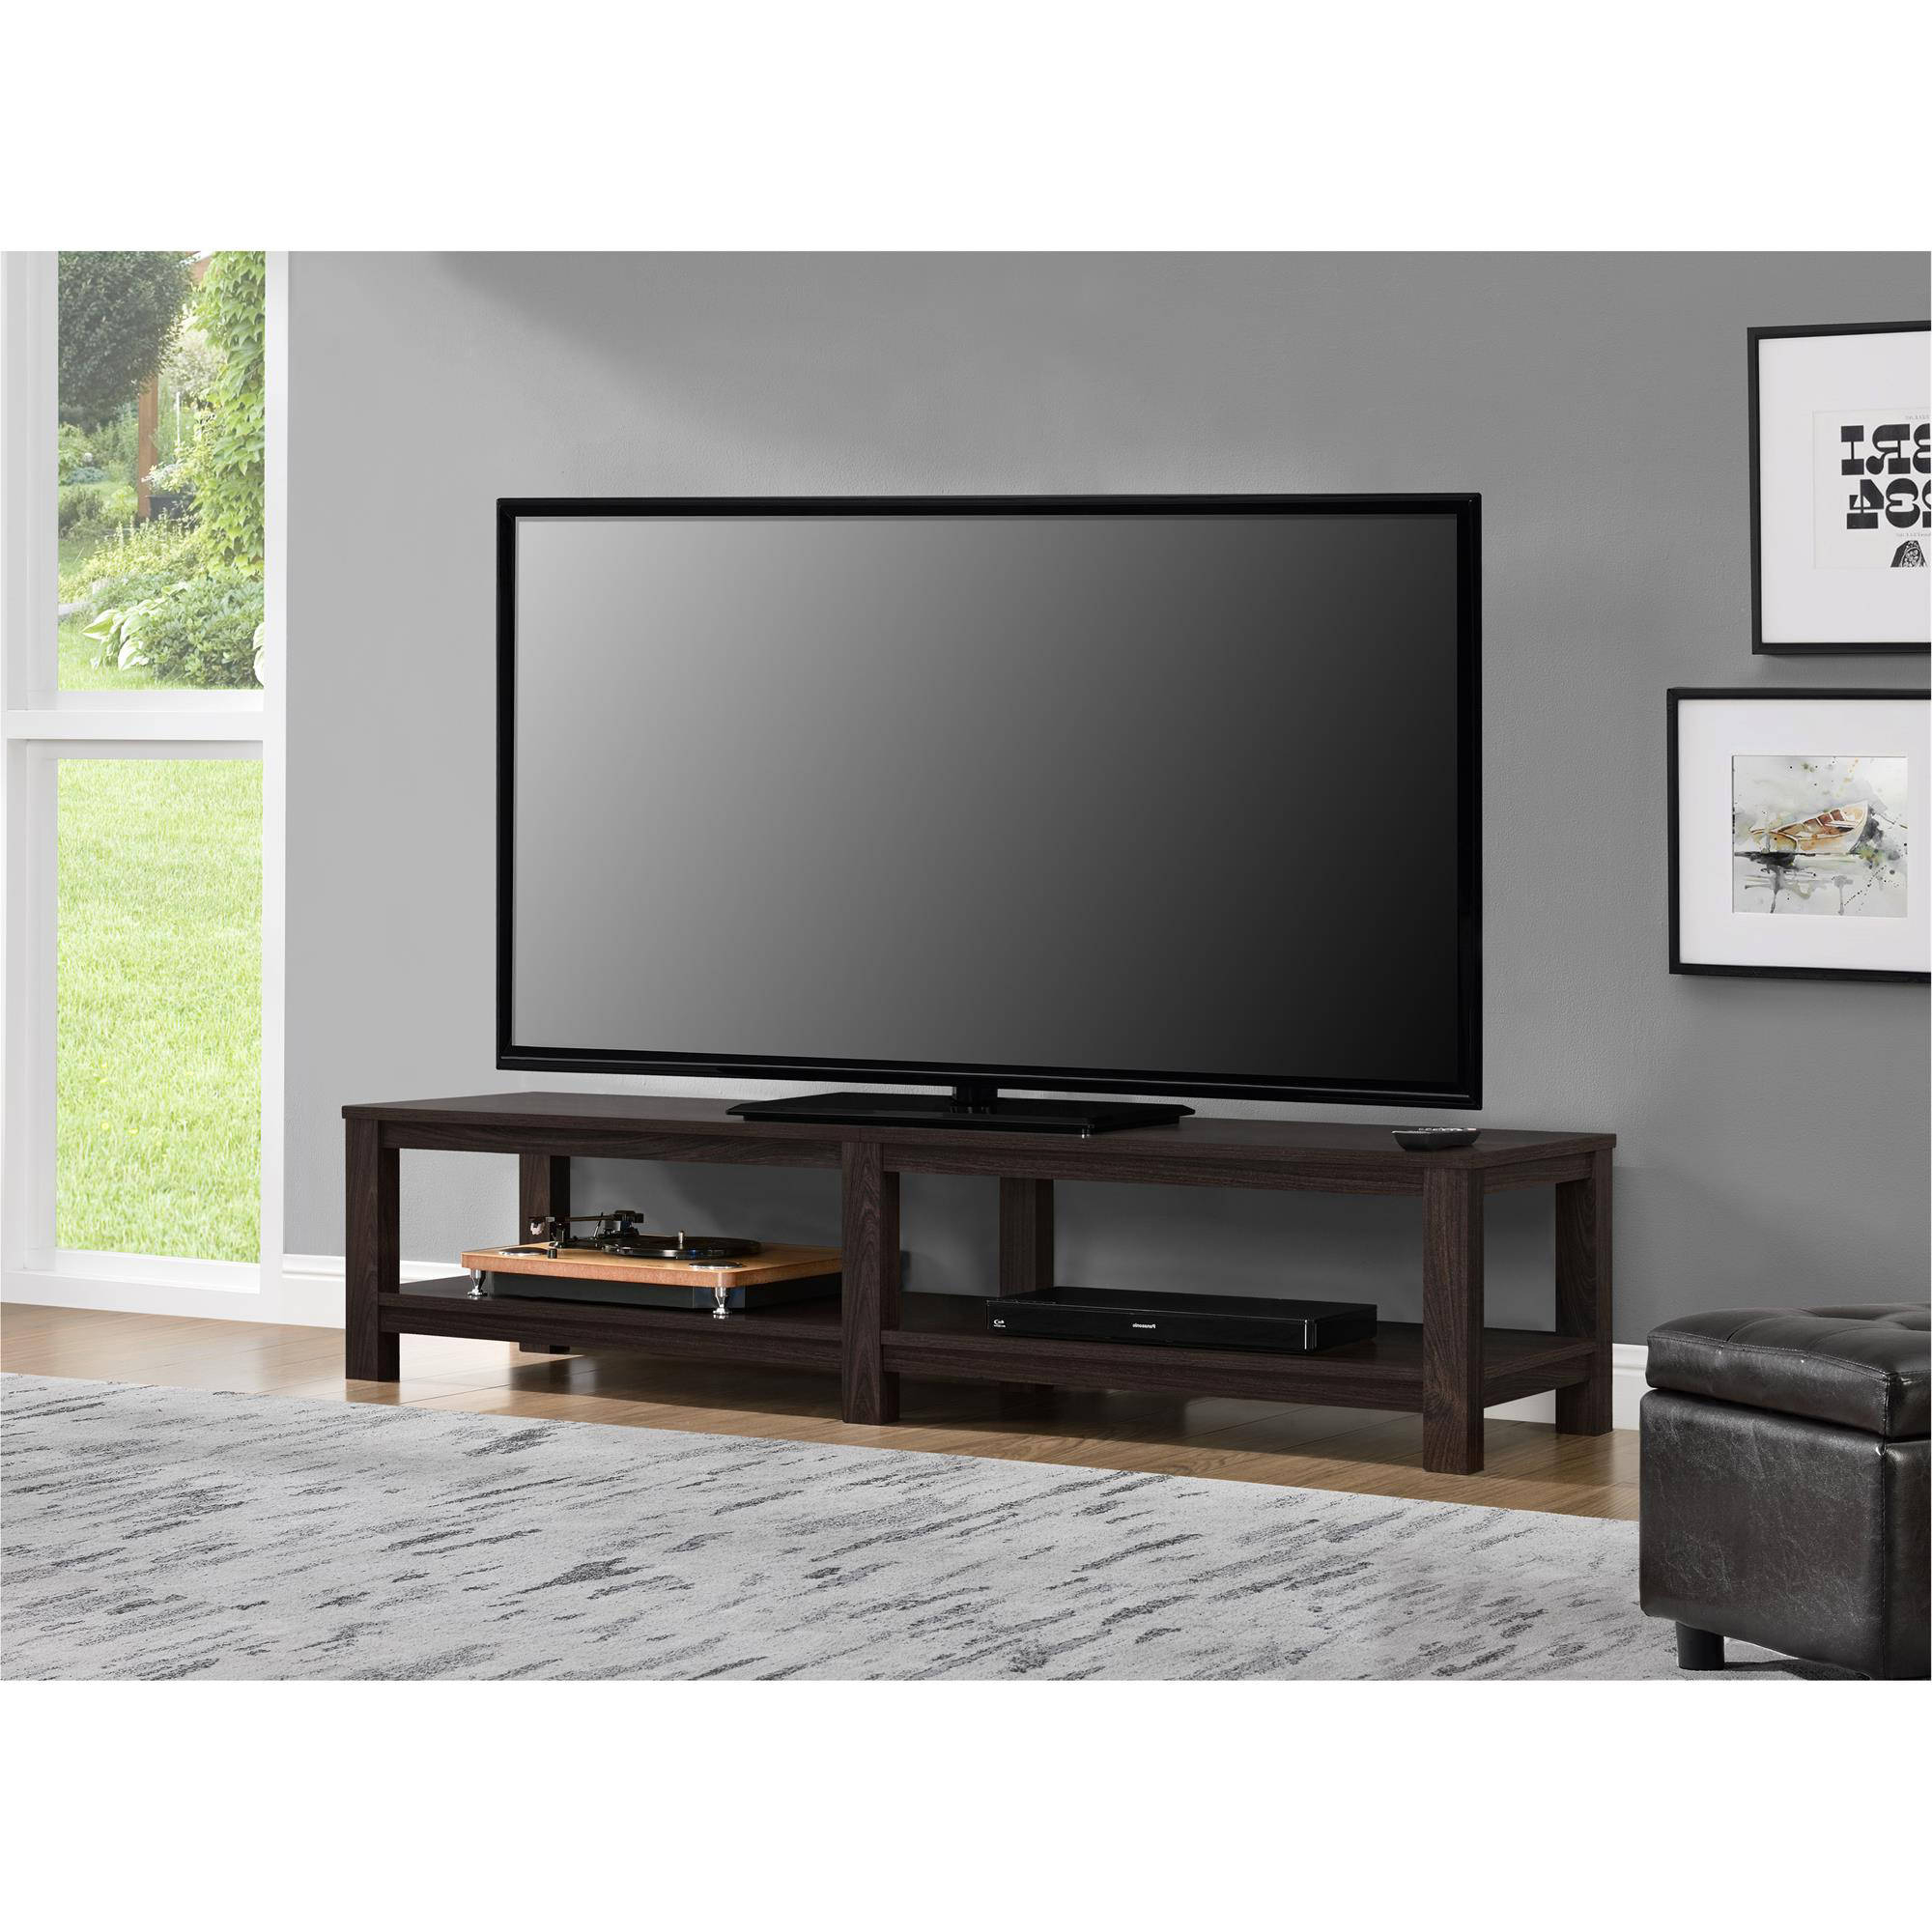 "Latest Entertainment Center Tv Stands For Mainstays Parsons Tv Stand For Tvs Up To 65"", Multiple Colors (View 9 of 20)"